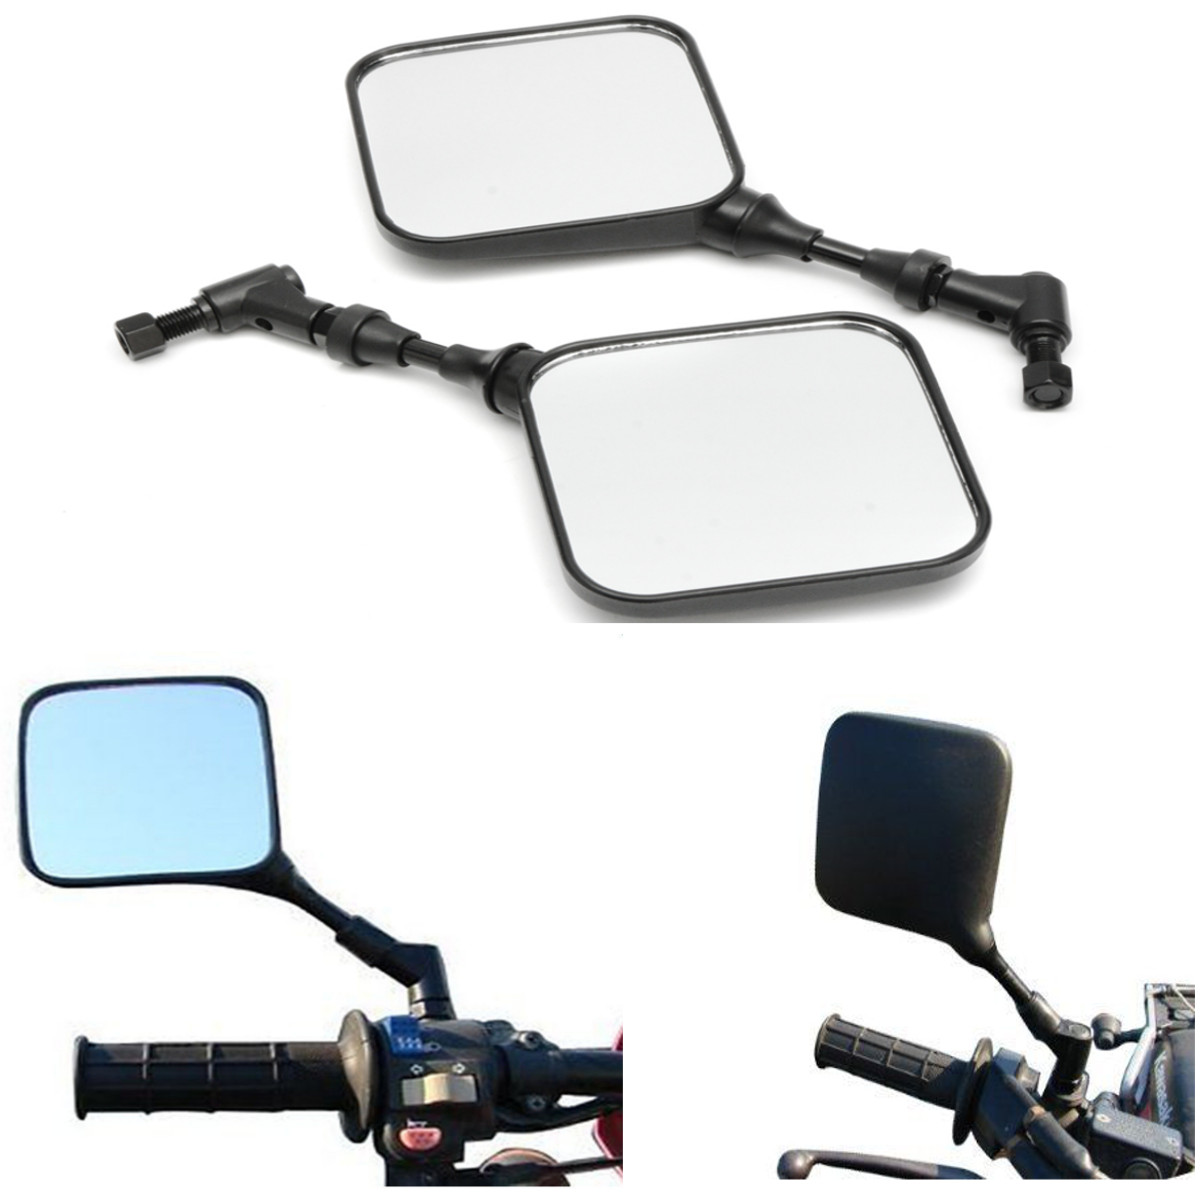 Pair Motorcycle Mirrors Rear View Side Mirror For Suzuki <font><b>DR</b></font> <font><b>200</b></font> 250 DR350 350 DRZ 400 650 DR650 image